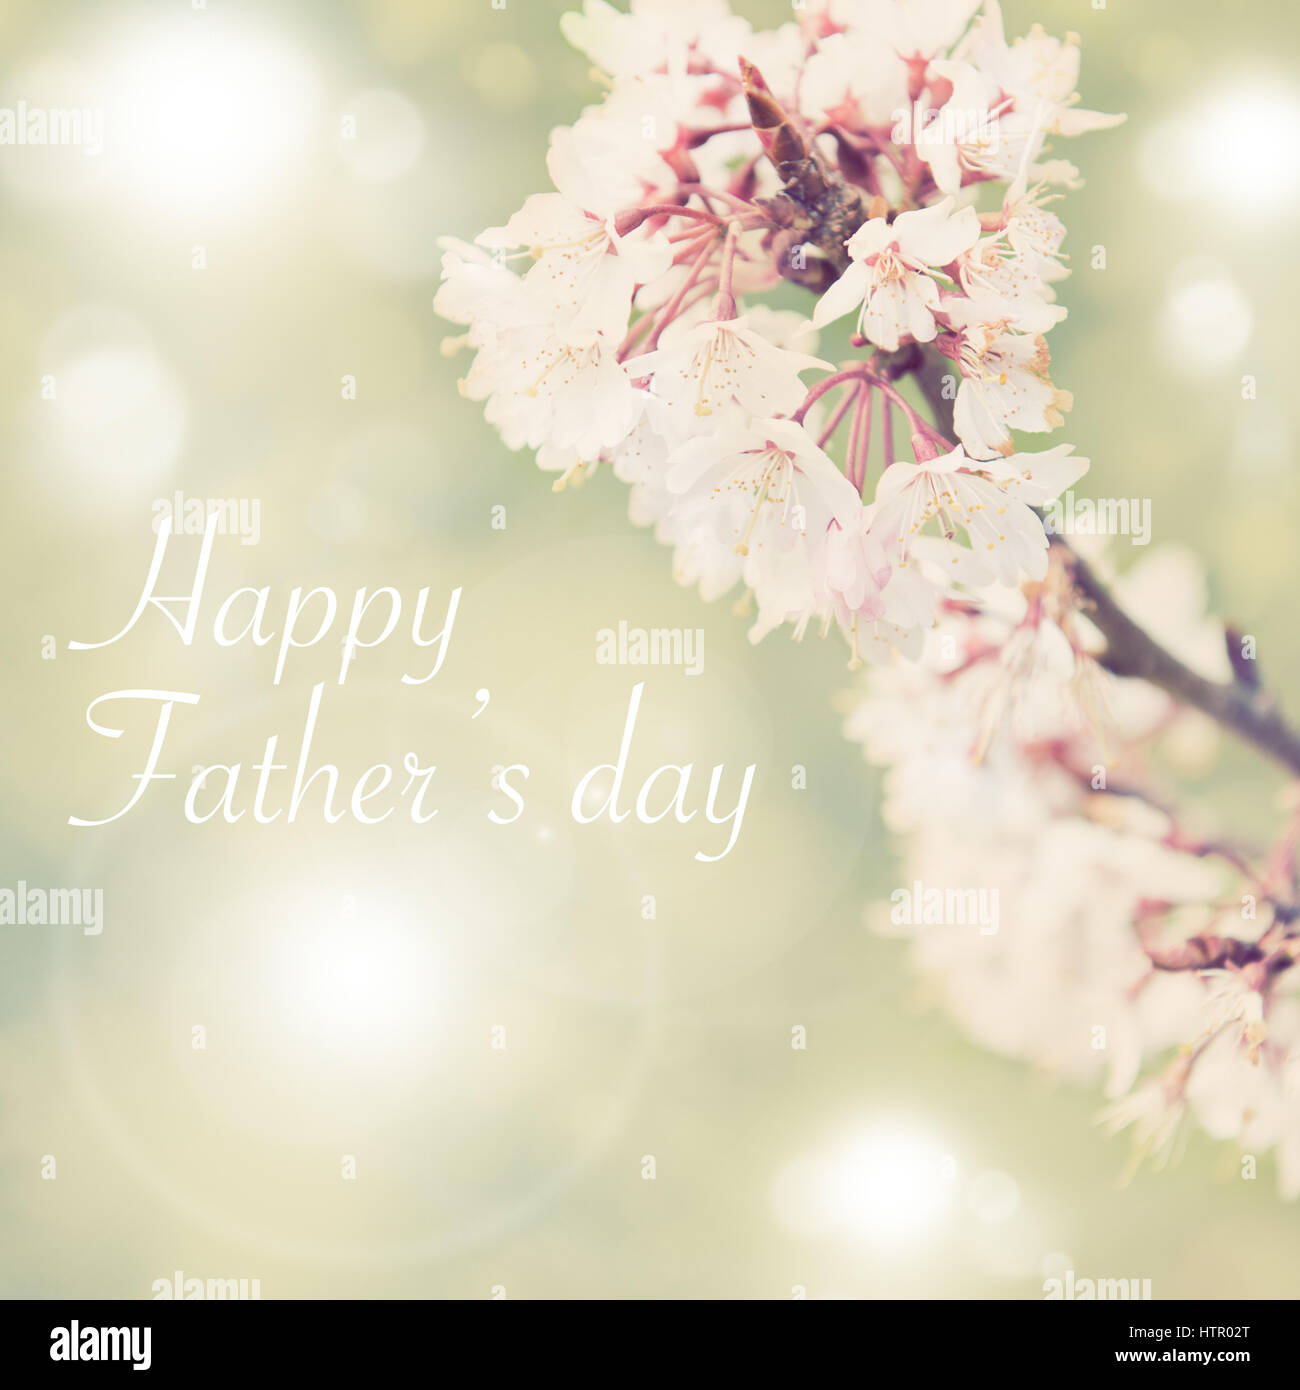 Fathers day concept, Spring border background with white blossom, colorised image with sun flare - Stock Image